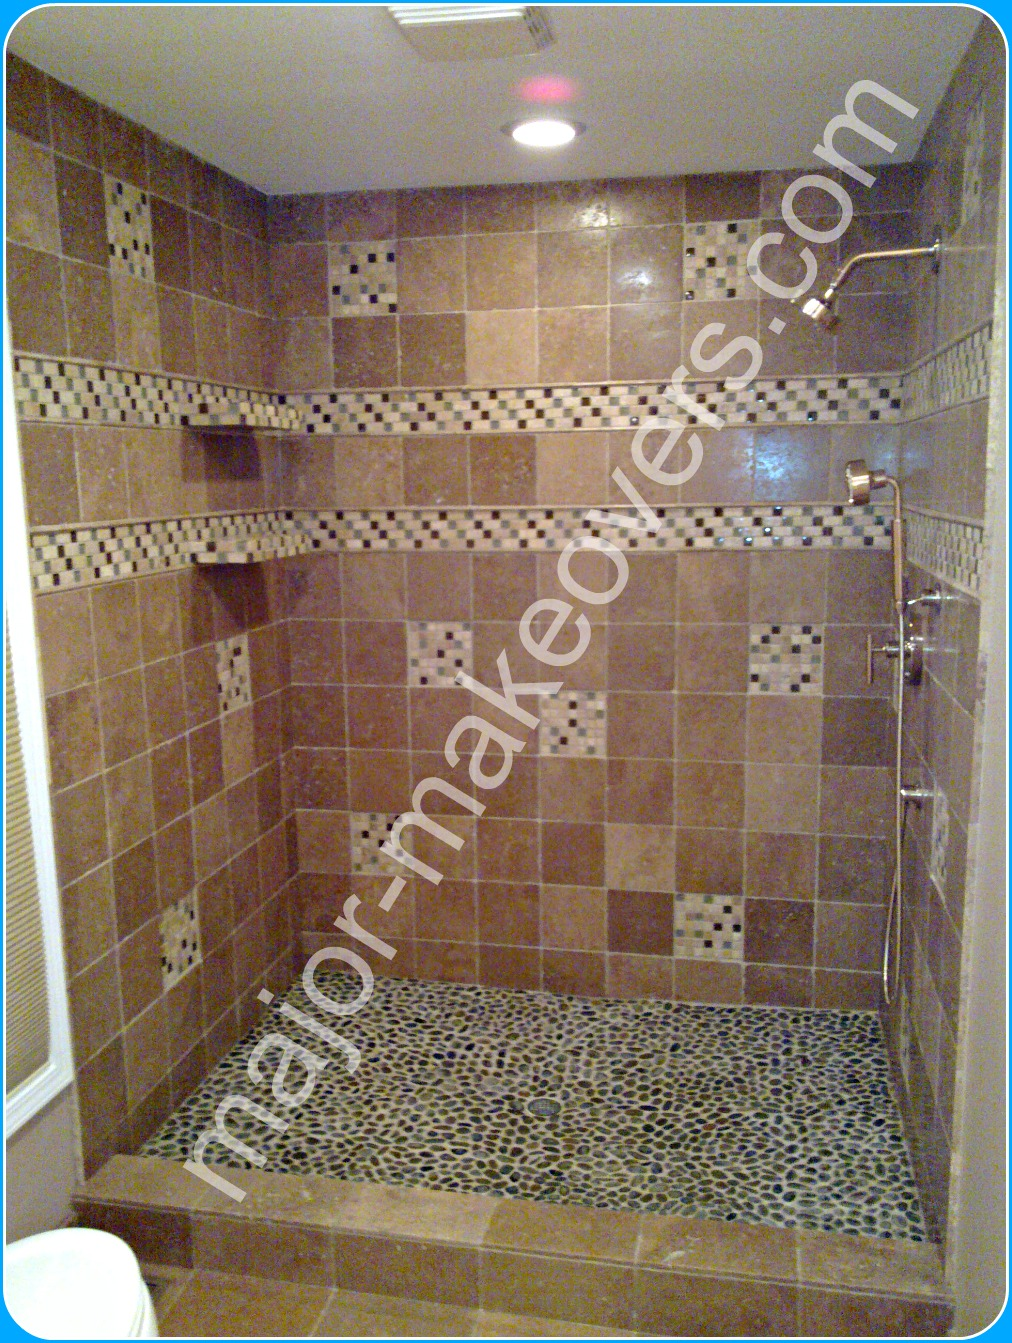 Sealed travertine tile installed on shower walls with 2 decorative mosaic and pencil tile lines - round pebble tile on shower floor and two 6x18 in. custom shower dishes/shelves.